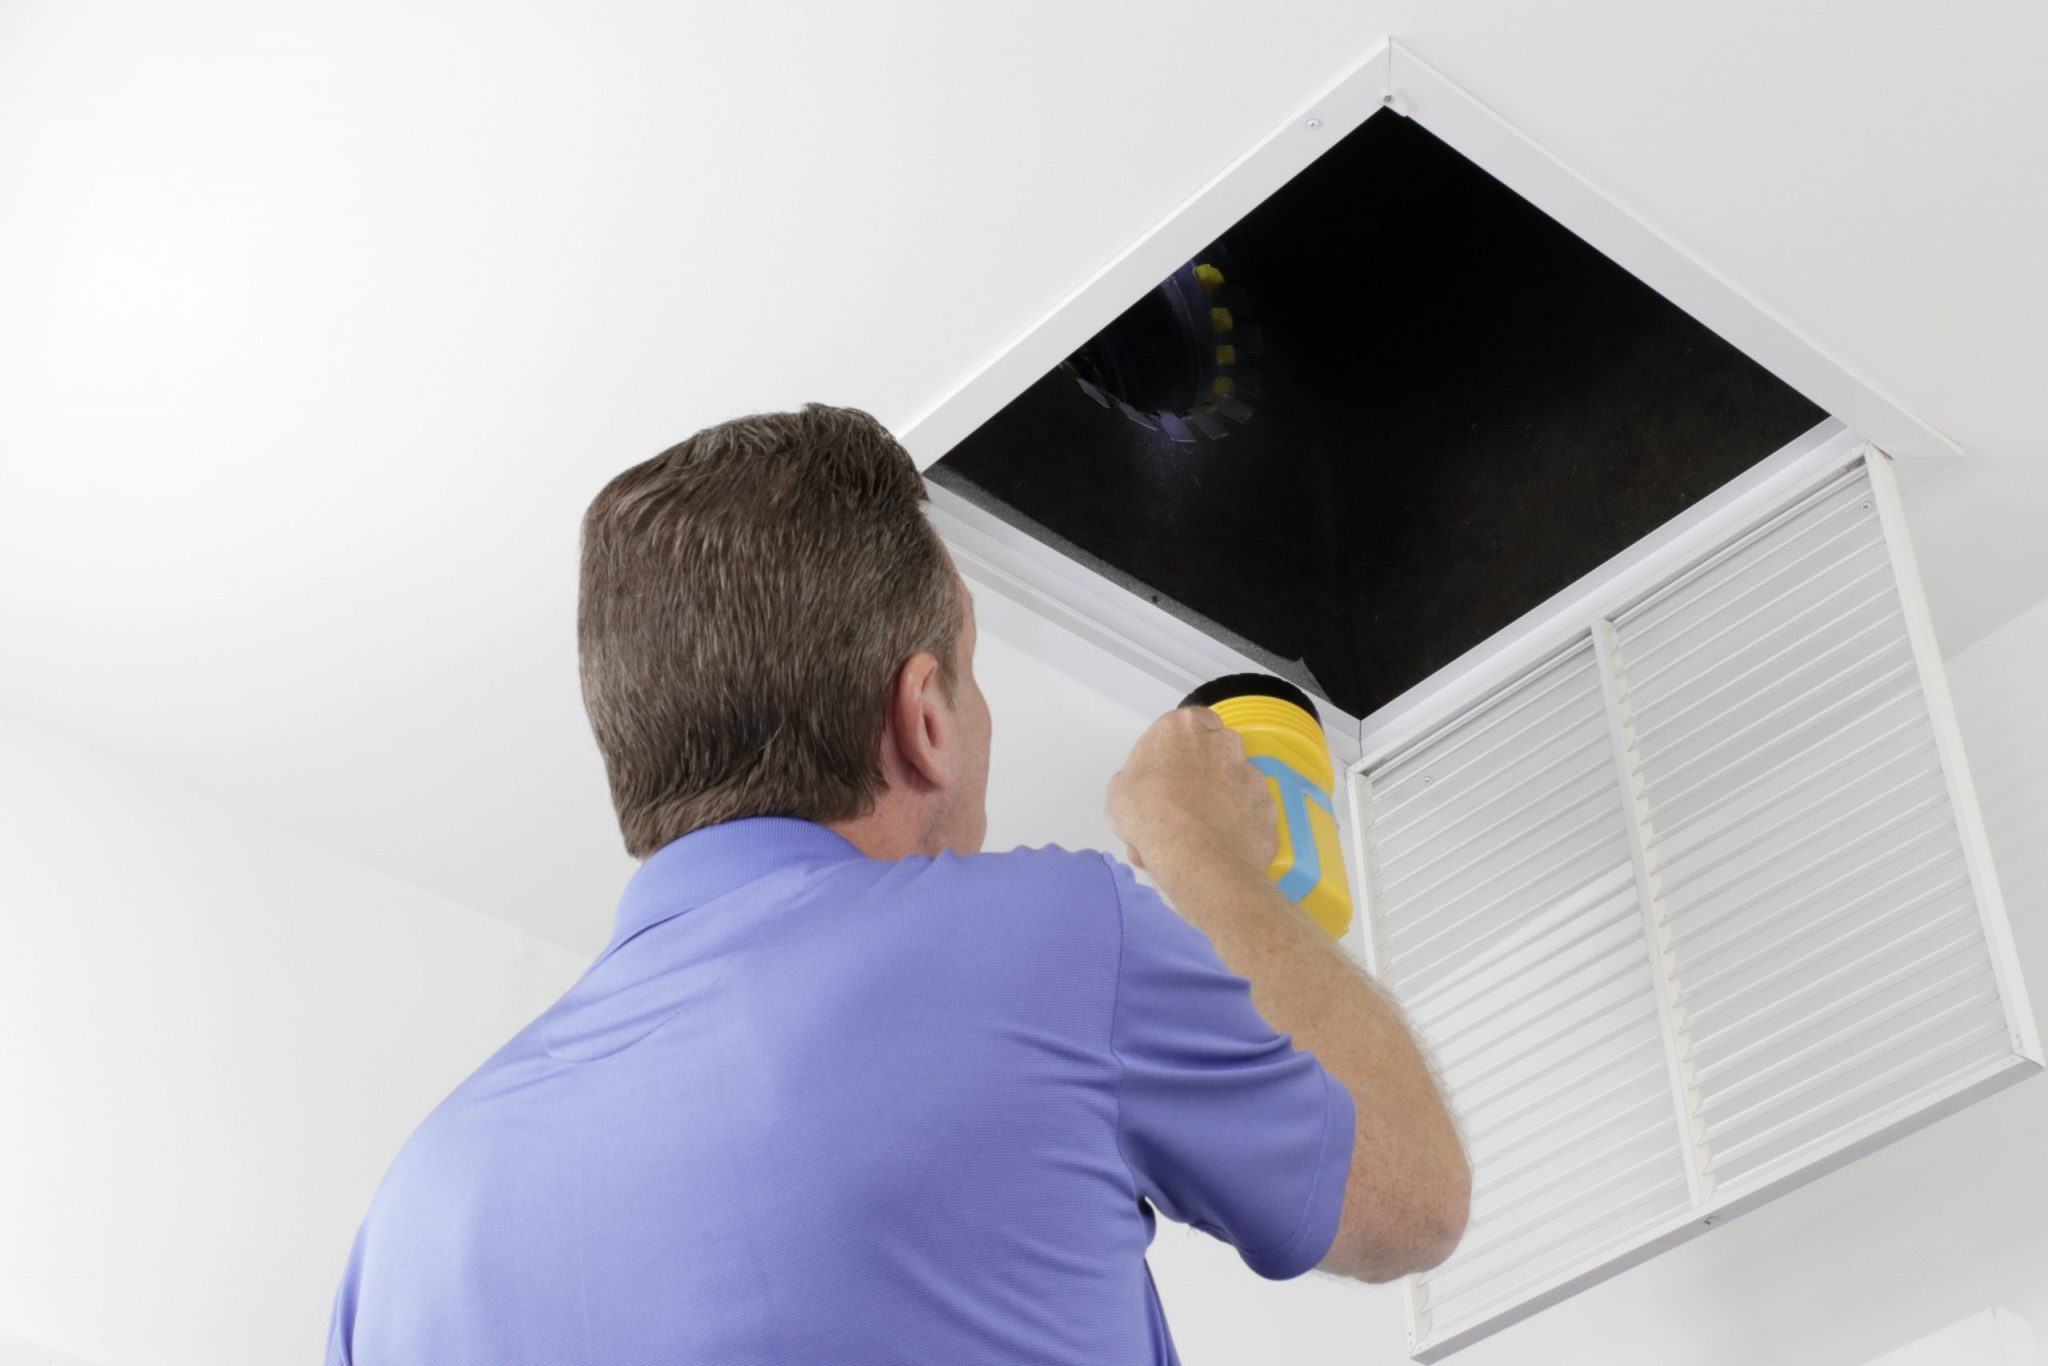 Older male with a yellow flashlight examining HVAC ducts in a large square vent.